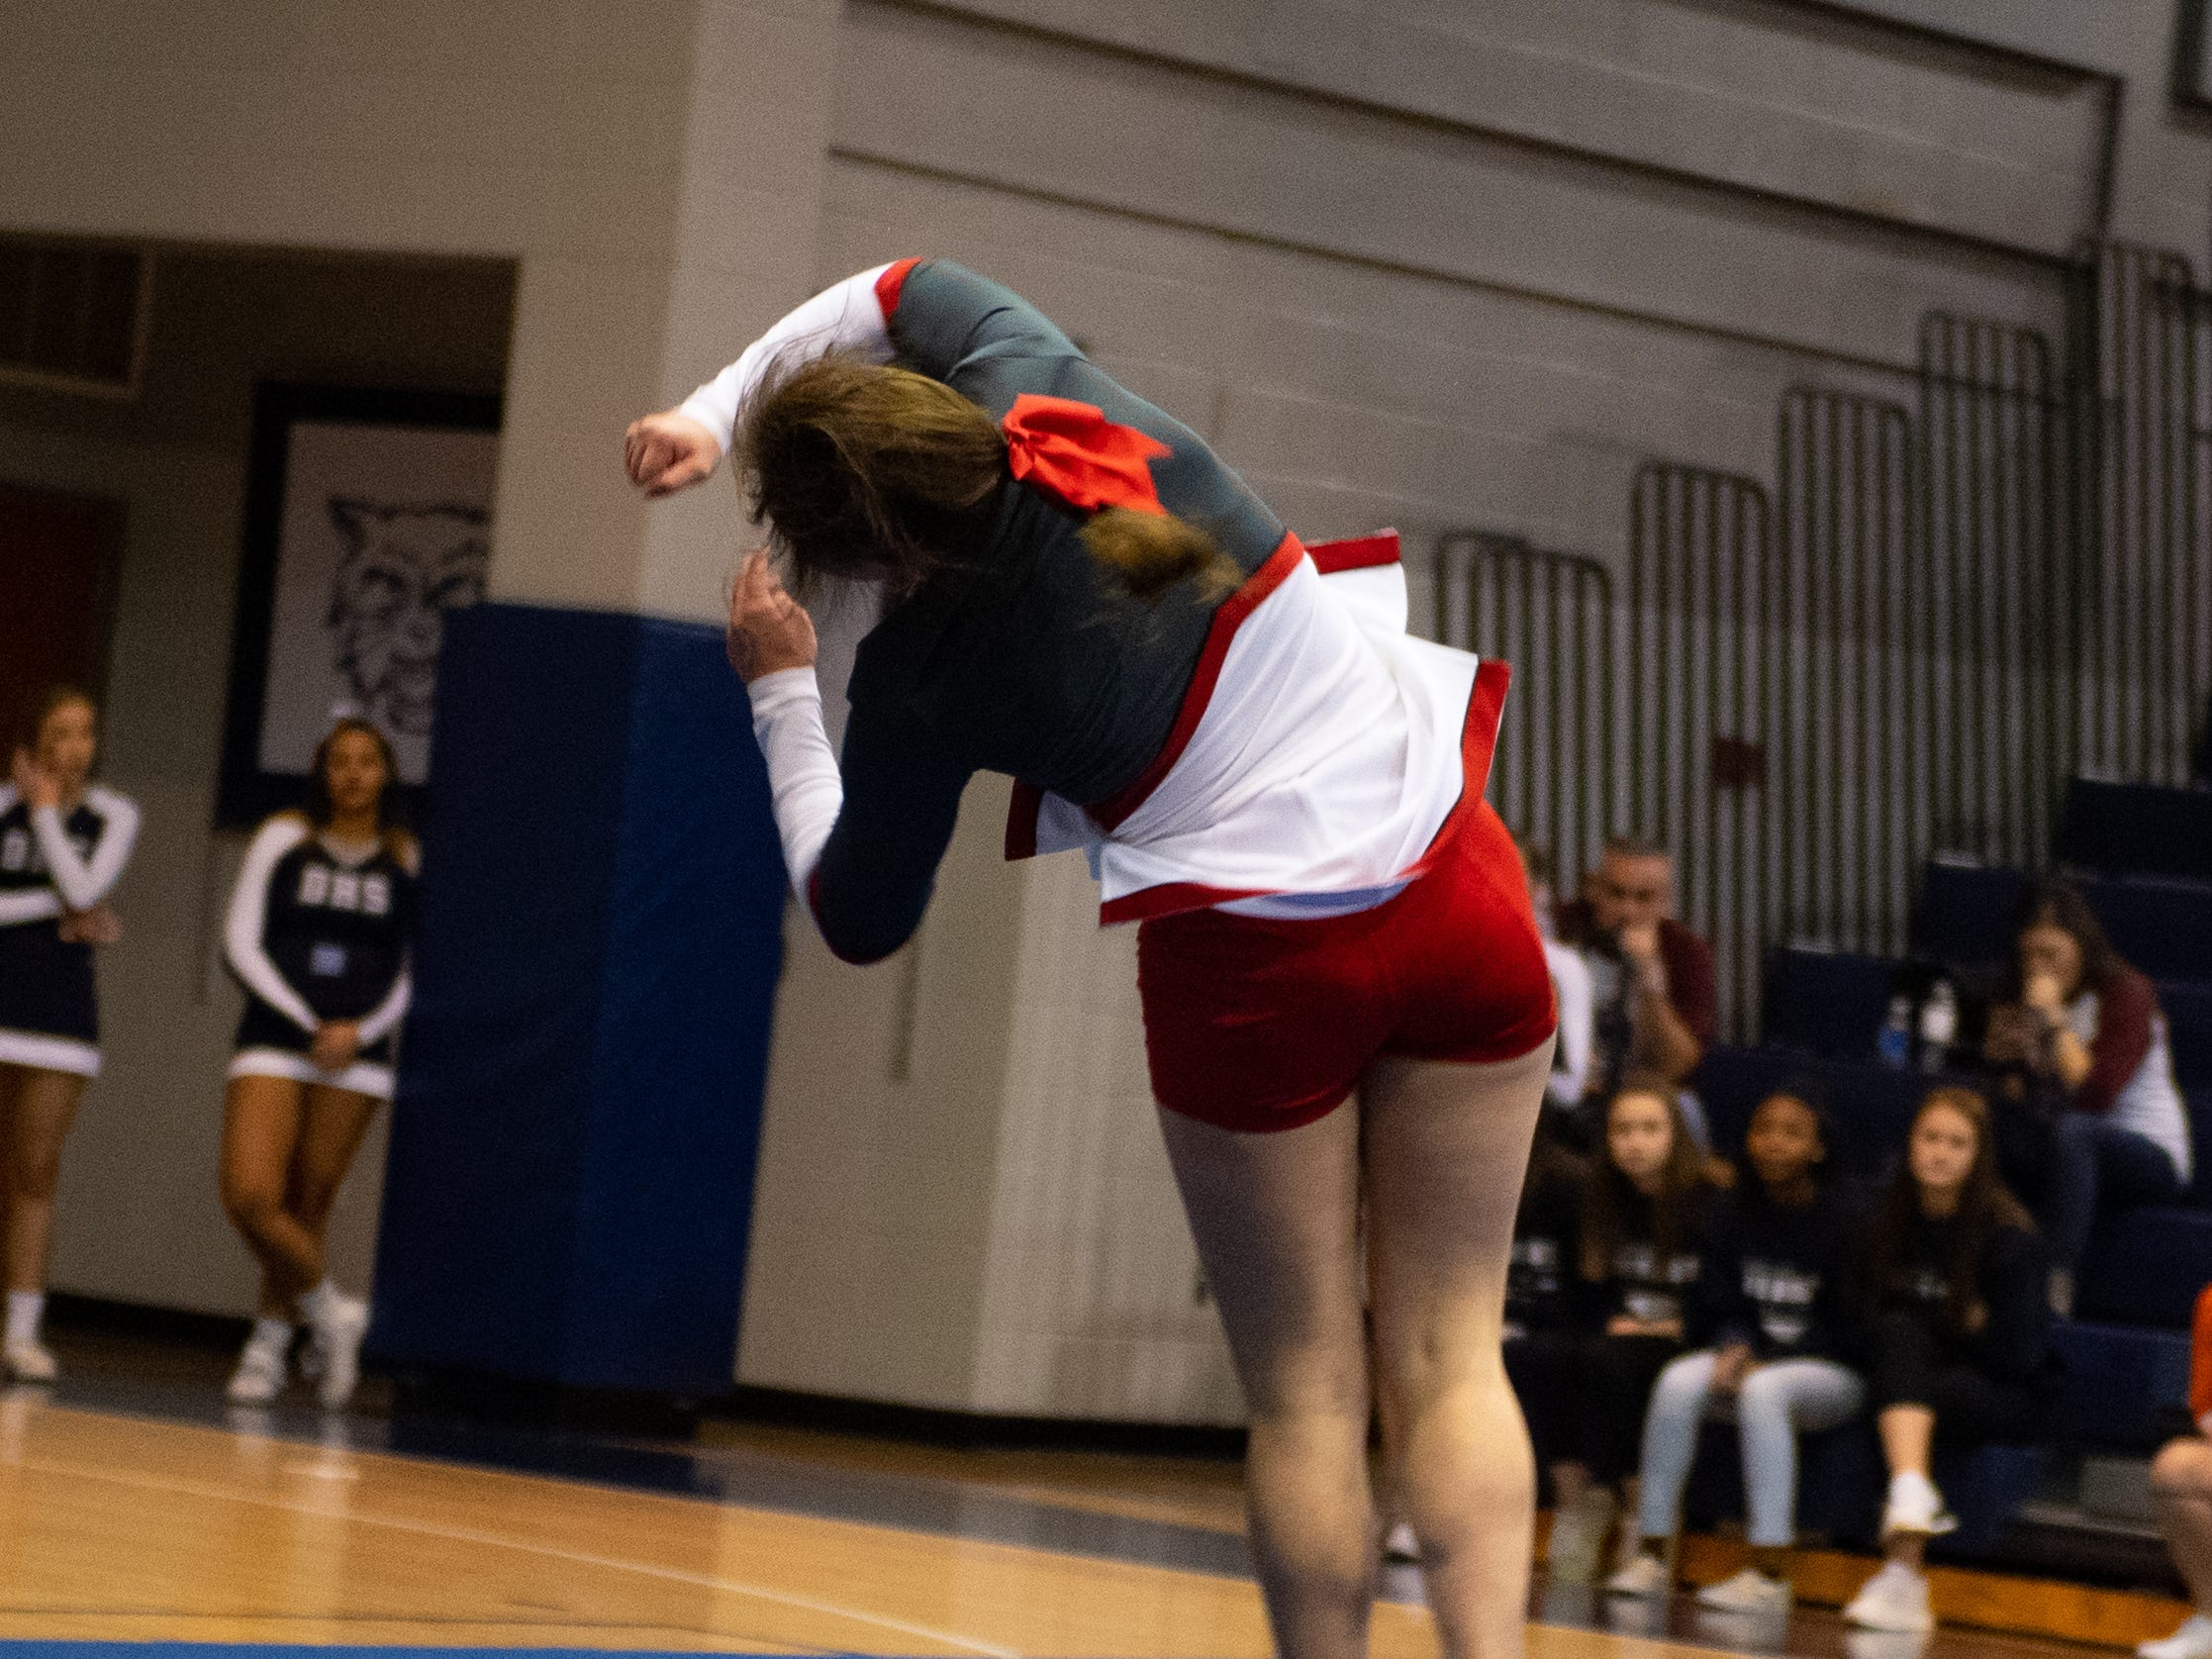 Dover competes in the tumble competition during the YAIAA competitive spirit championships at Dallastown High School, Saturday, December 1, 2018. Dover won the small-varsity division and Red Lion won the coed division.